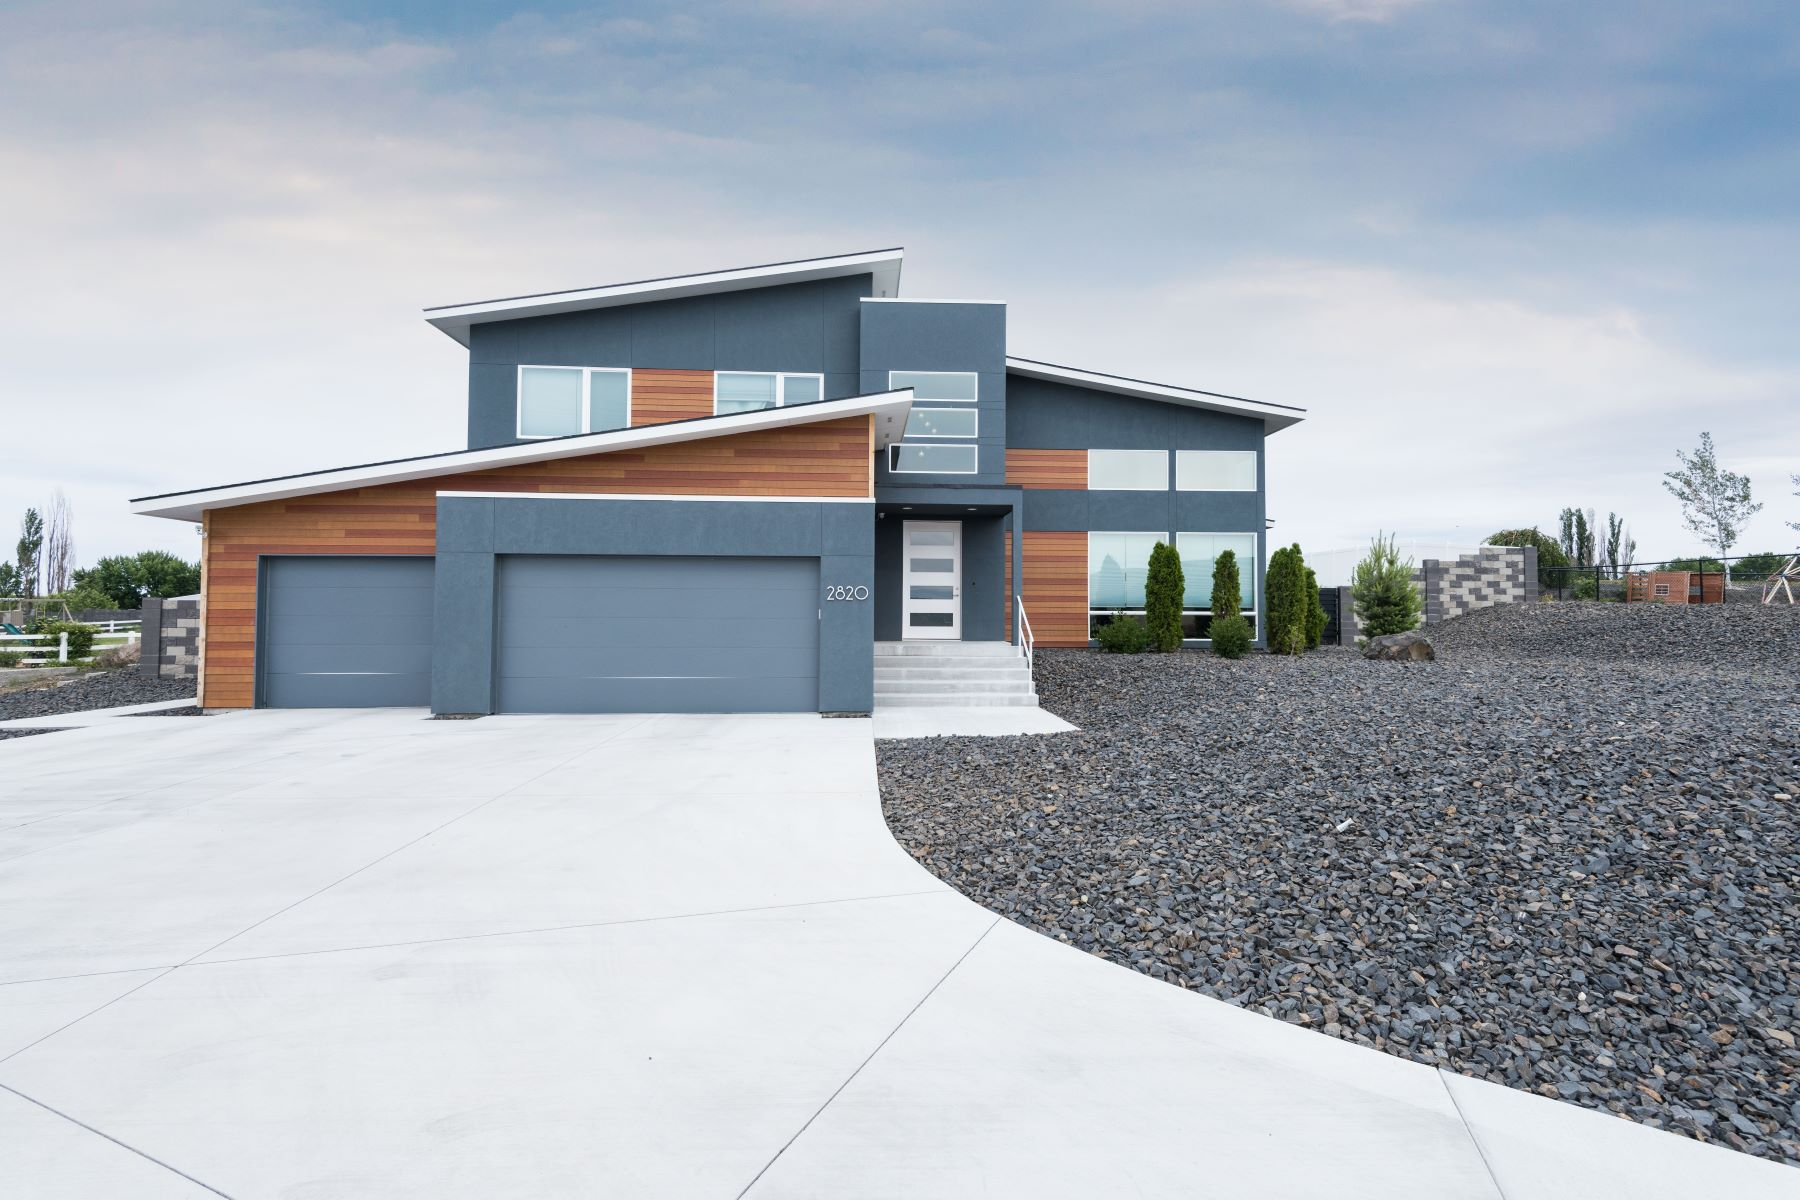 Single Family Home for Sale at Custom Contemporary 2820 Sunshine Ridge Richland, Washington 99352 United States